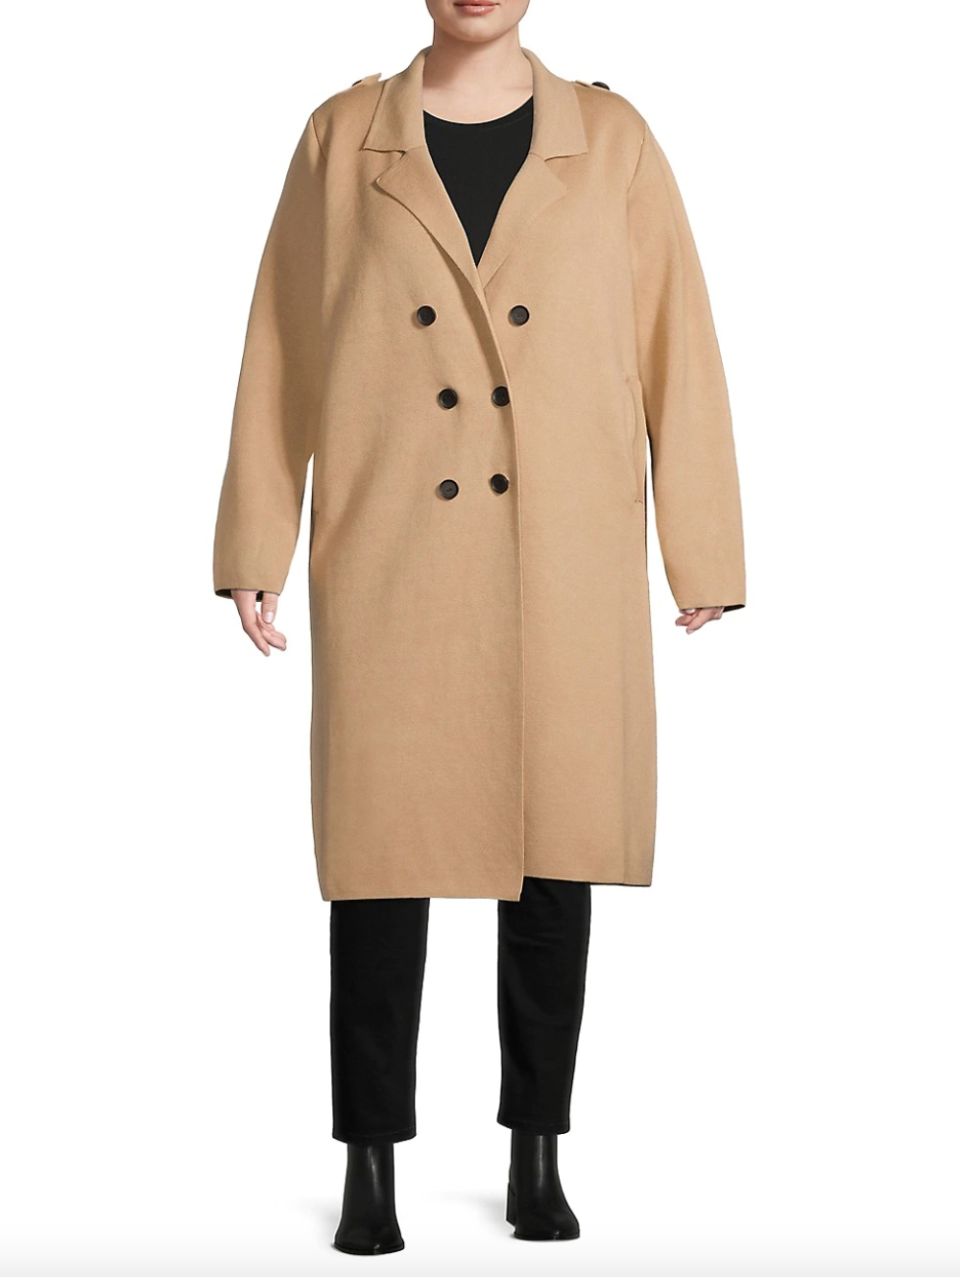 Molly Bracken Plus Double-Breasted Trench Coat (Photo via The Bay)